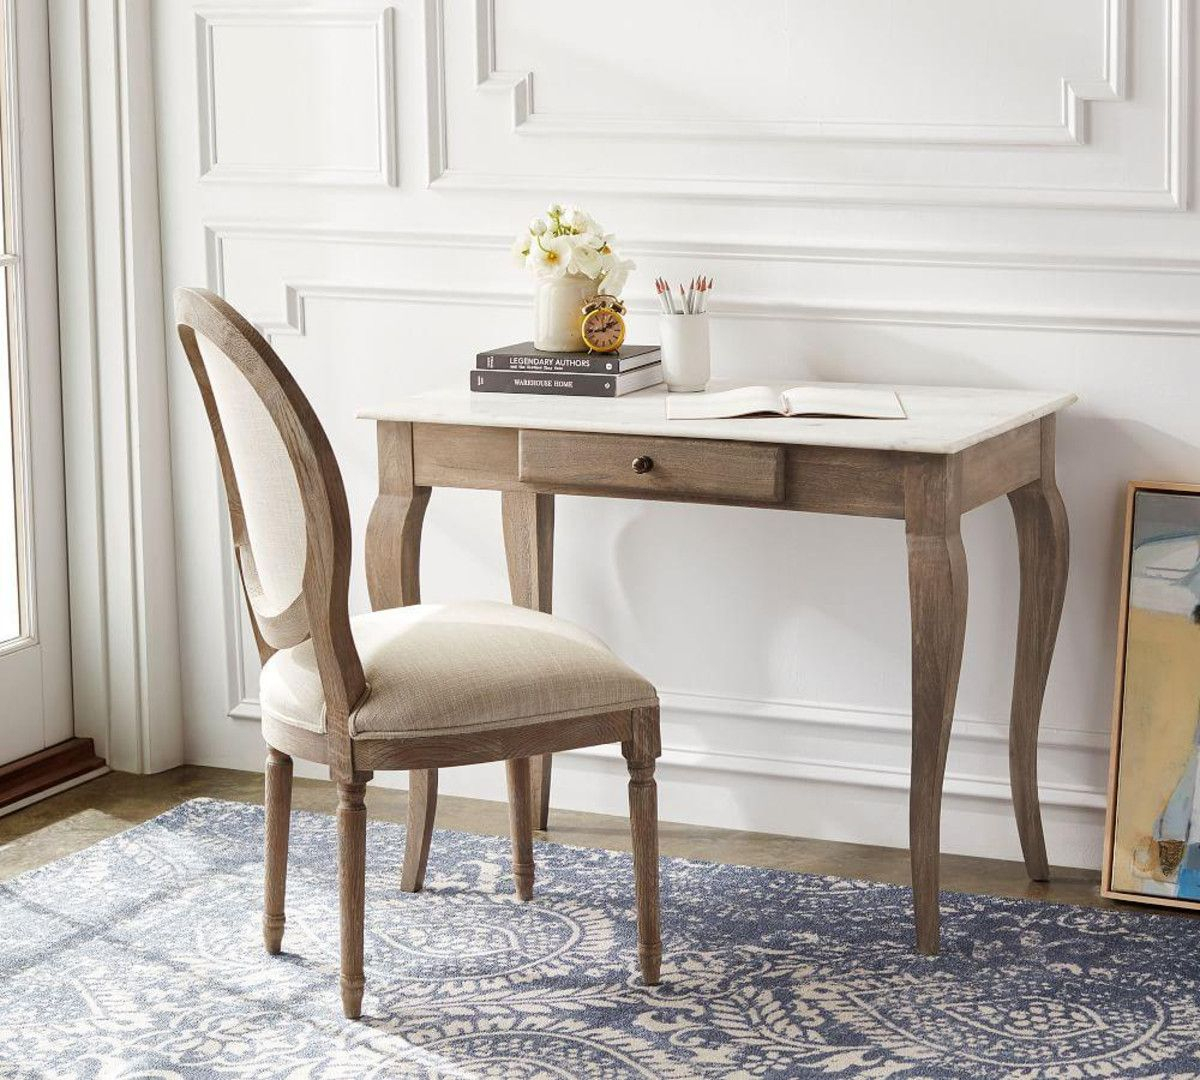 Alexandra Desk | Pottery Barn Ca In 2019 | Marble Desk Regarding Most Recent Alexandra Round Marble Pedestal Dining Tables (View 18 of 25)